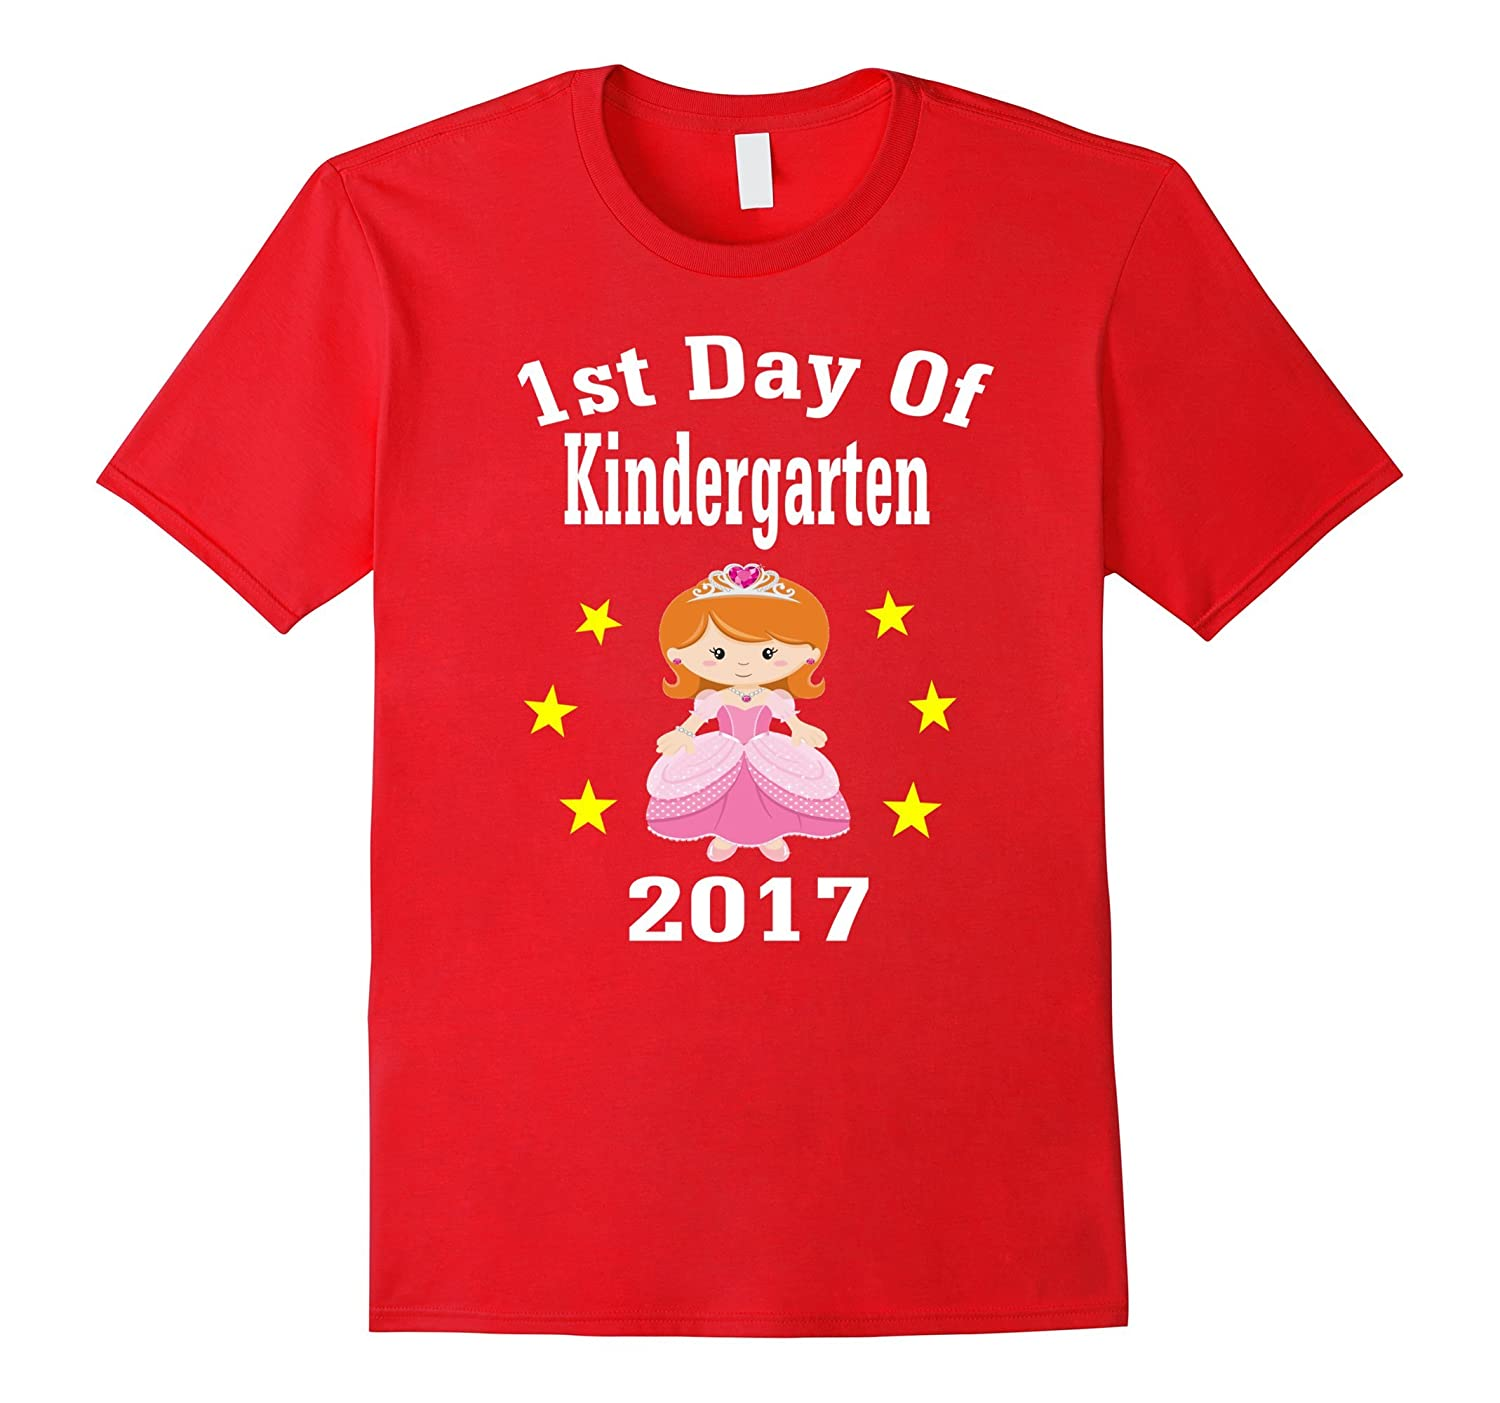 1st Day Of Kindergarten 2017 First Day of School T-Shirt R-Art